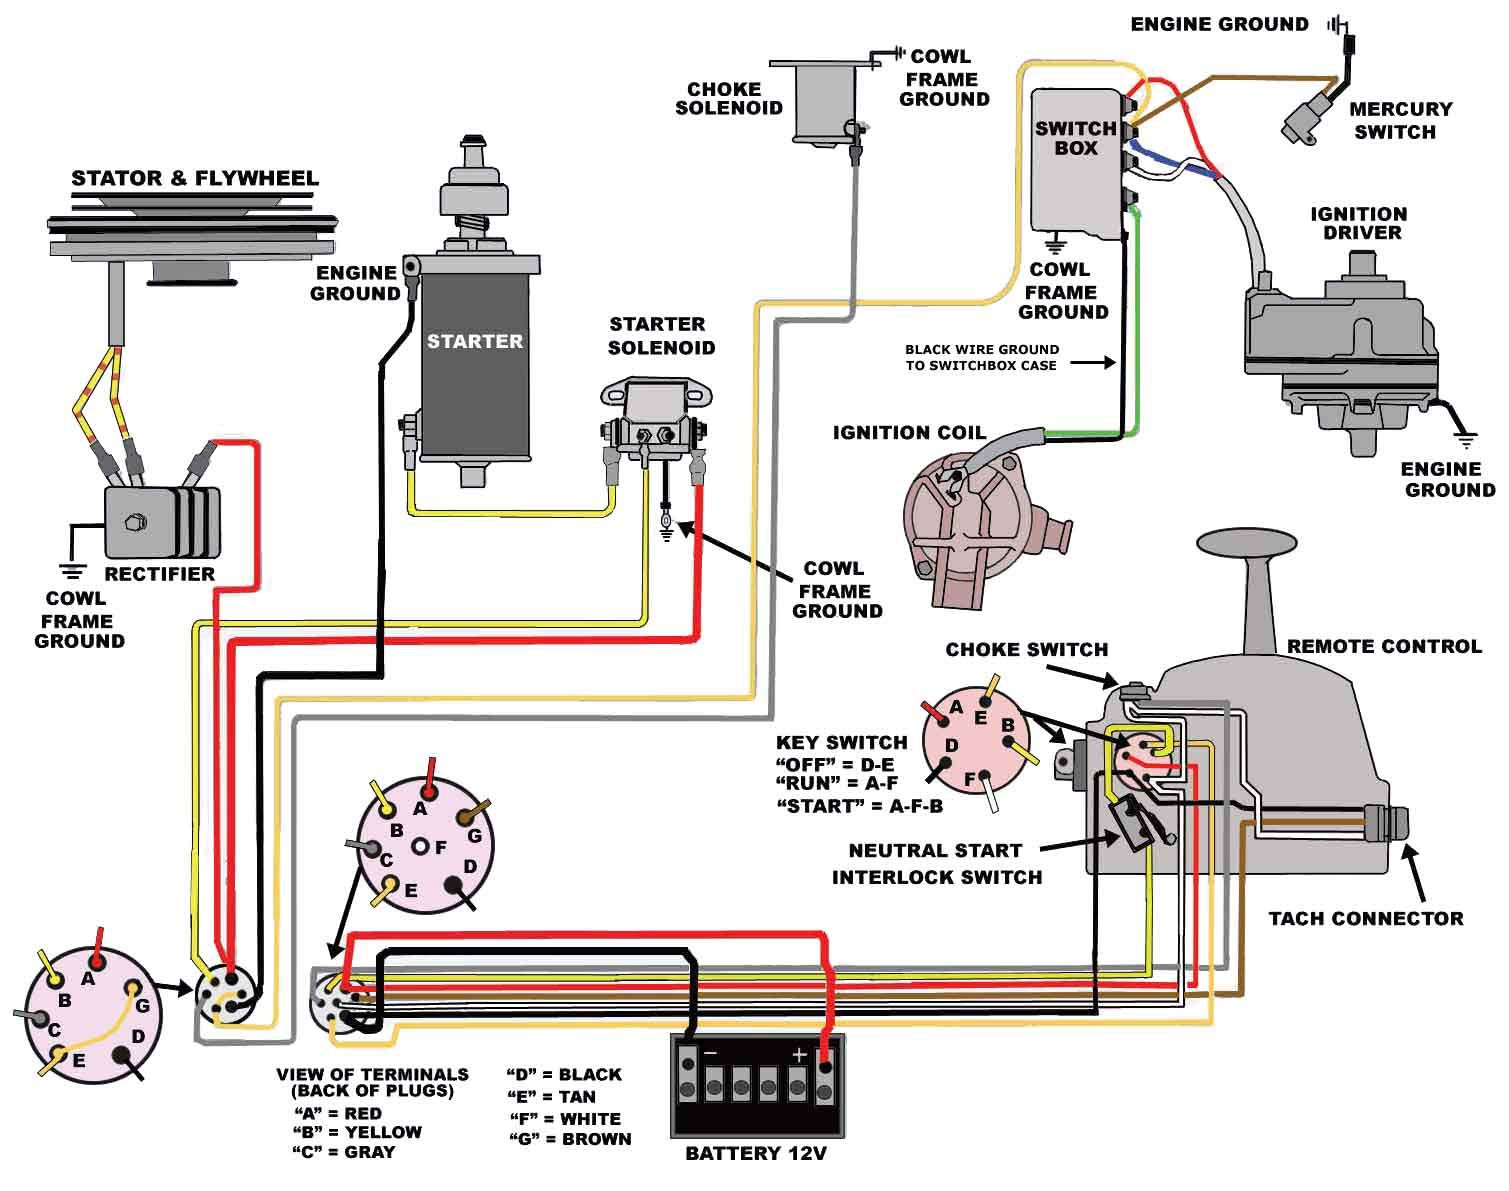 mercury jet wiring diagram mercury wiring diagrams online mercury wiring diagram mercury wiring diagrams online